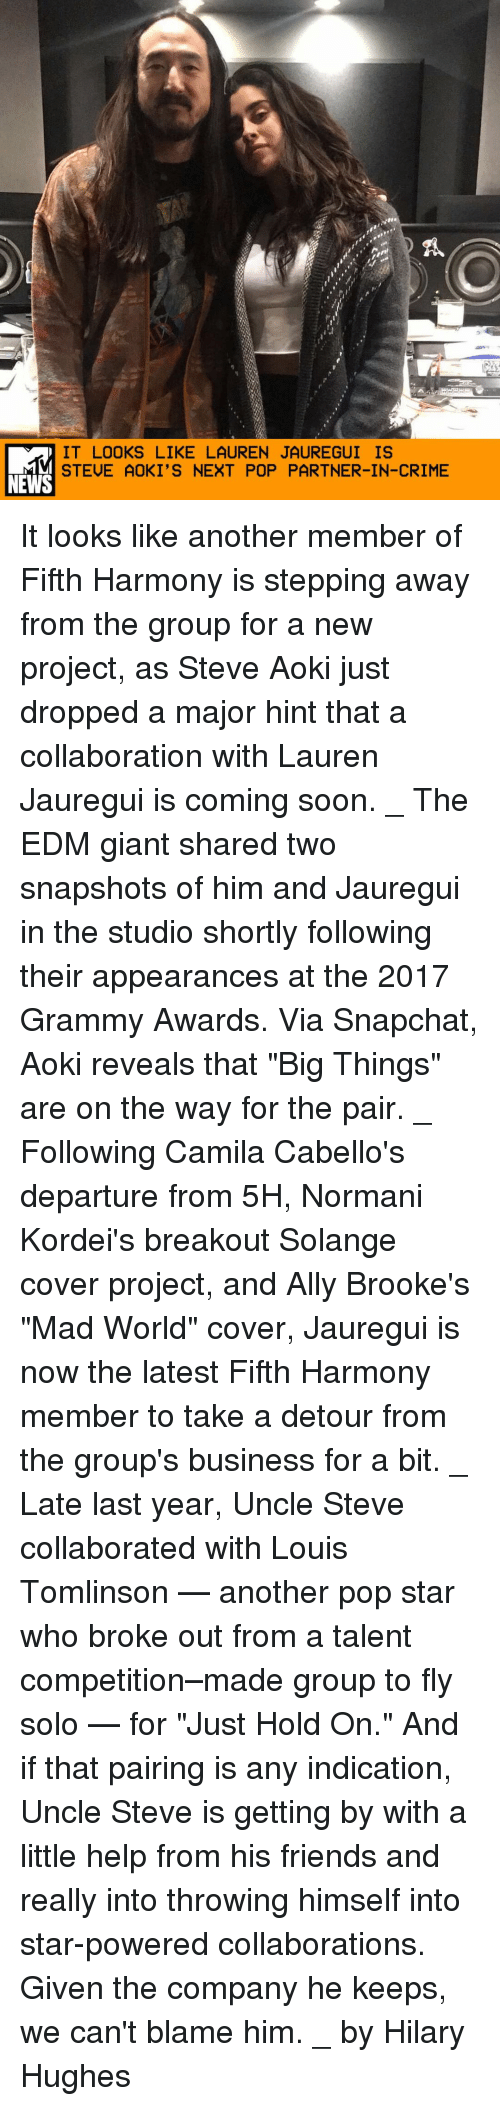 "Crime, Friends, and Grammy Awards: IT LOOKS LIKE LAUREN JAUREGUI IS  STEUE AOKI'S NEXT POP PARTNER-IN-CRIME  NEWS It looks like another member of Fifth Harmony is stepping away from the group for a new project, as Steve Aoki just dropped a major hint that a collaboration with Lauren Jauregui is coming soon. _ The EDM giant shared two snapshots of him and Jauregui in the studio shortly following their appearances at the 2017 Grammy Awards. Via Snapchat, Aoki reveals that ""Big Things"" are on the way for the pair. _ Following Camila Cabello's departure from 5H, Normani Kordei's breakout Solange cover project, and Ally Brooke's ""Mad World"" cover, Jauregui is now the latest Fifth Harmony member to take a detour from the group's business for a bit. _ Late last year, Uncle Steve collaborated with Louis Tomlinson — another pop star who broke out from a talent competition–made group to fly solo — for ""Just Hold On."" And if that pairing is any indication, Uncle Steve is getting by with a little help from his friends and really into throwing himself into star-powered collaborations. Given the company he keeps, we can't blame him. _ by Hilary Hughes"